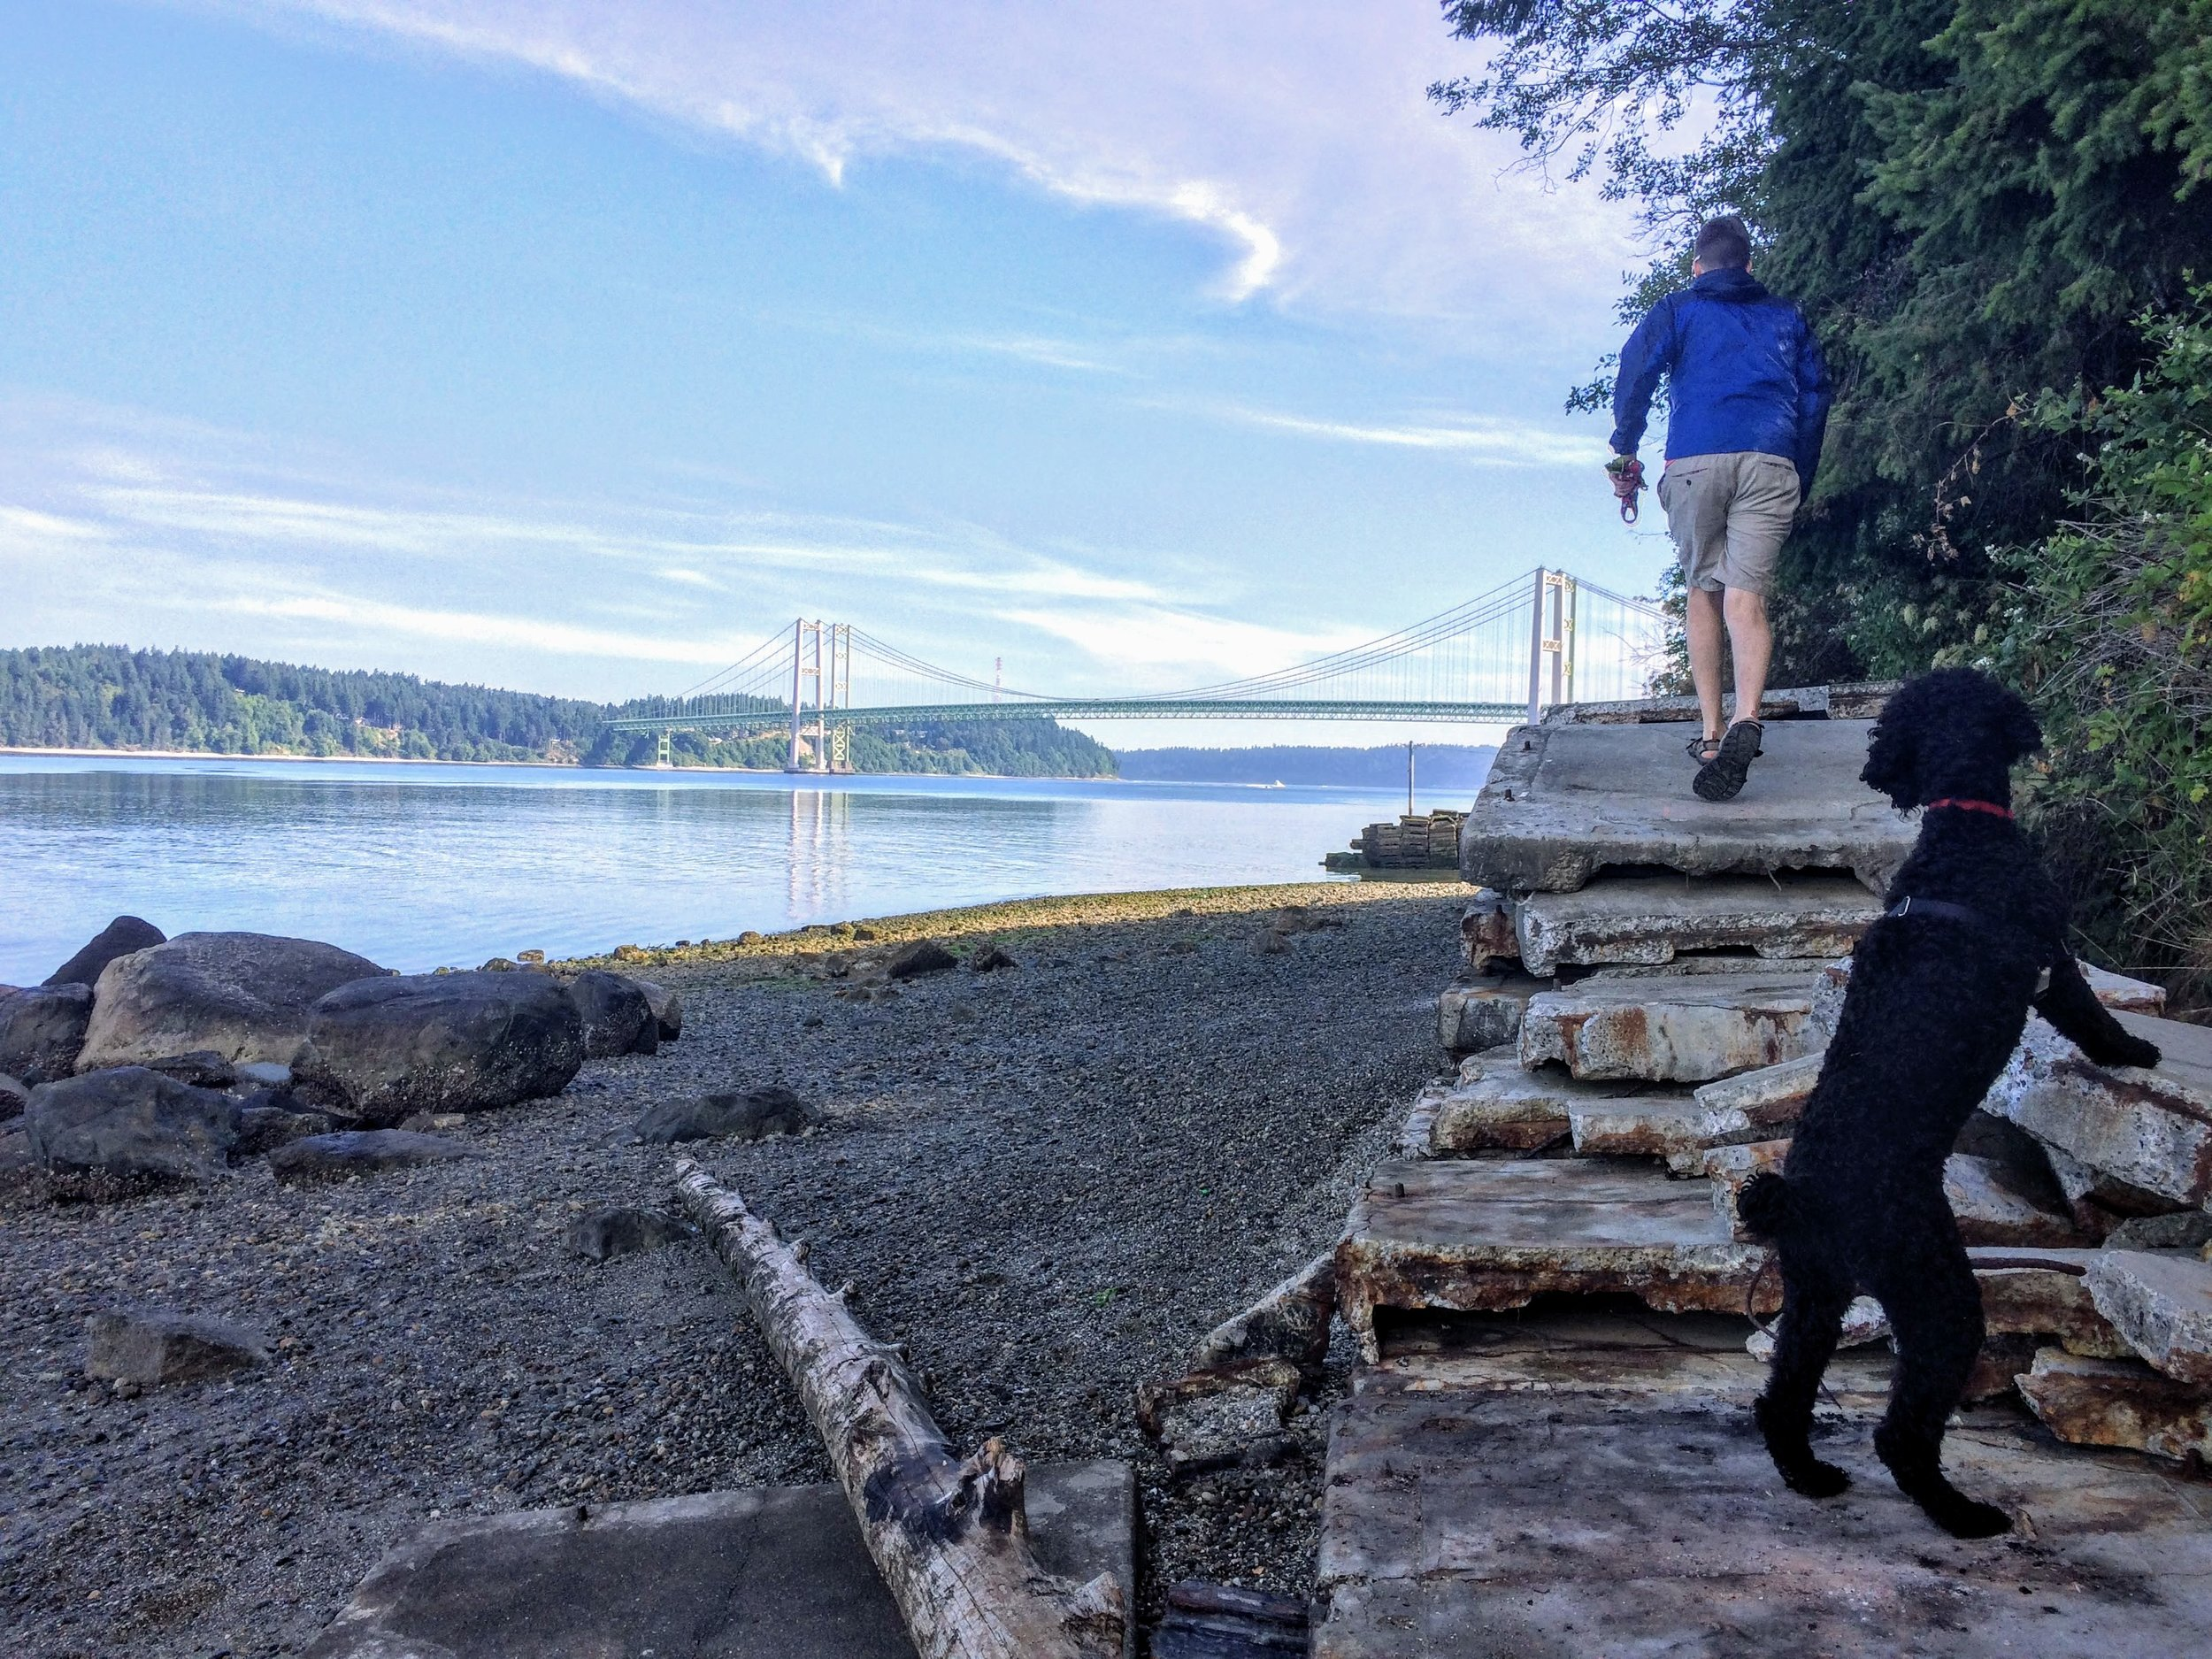 Michael and Dandie having a run-around at Titlow Beach with the Narrows Bridges beyond.